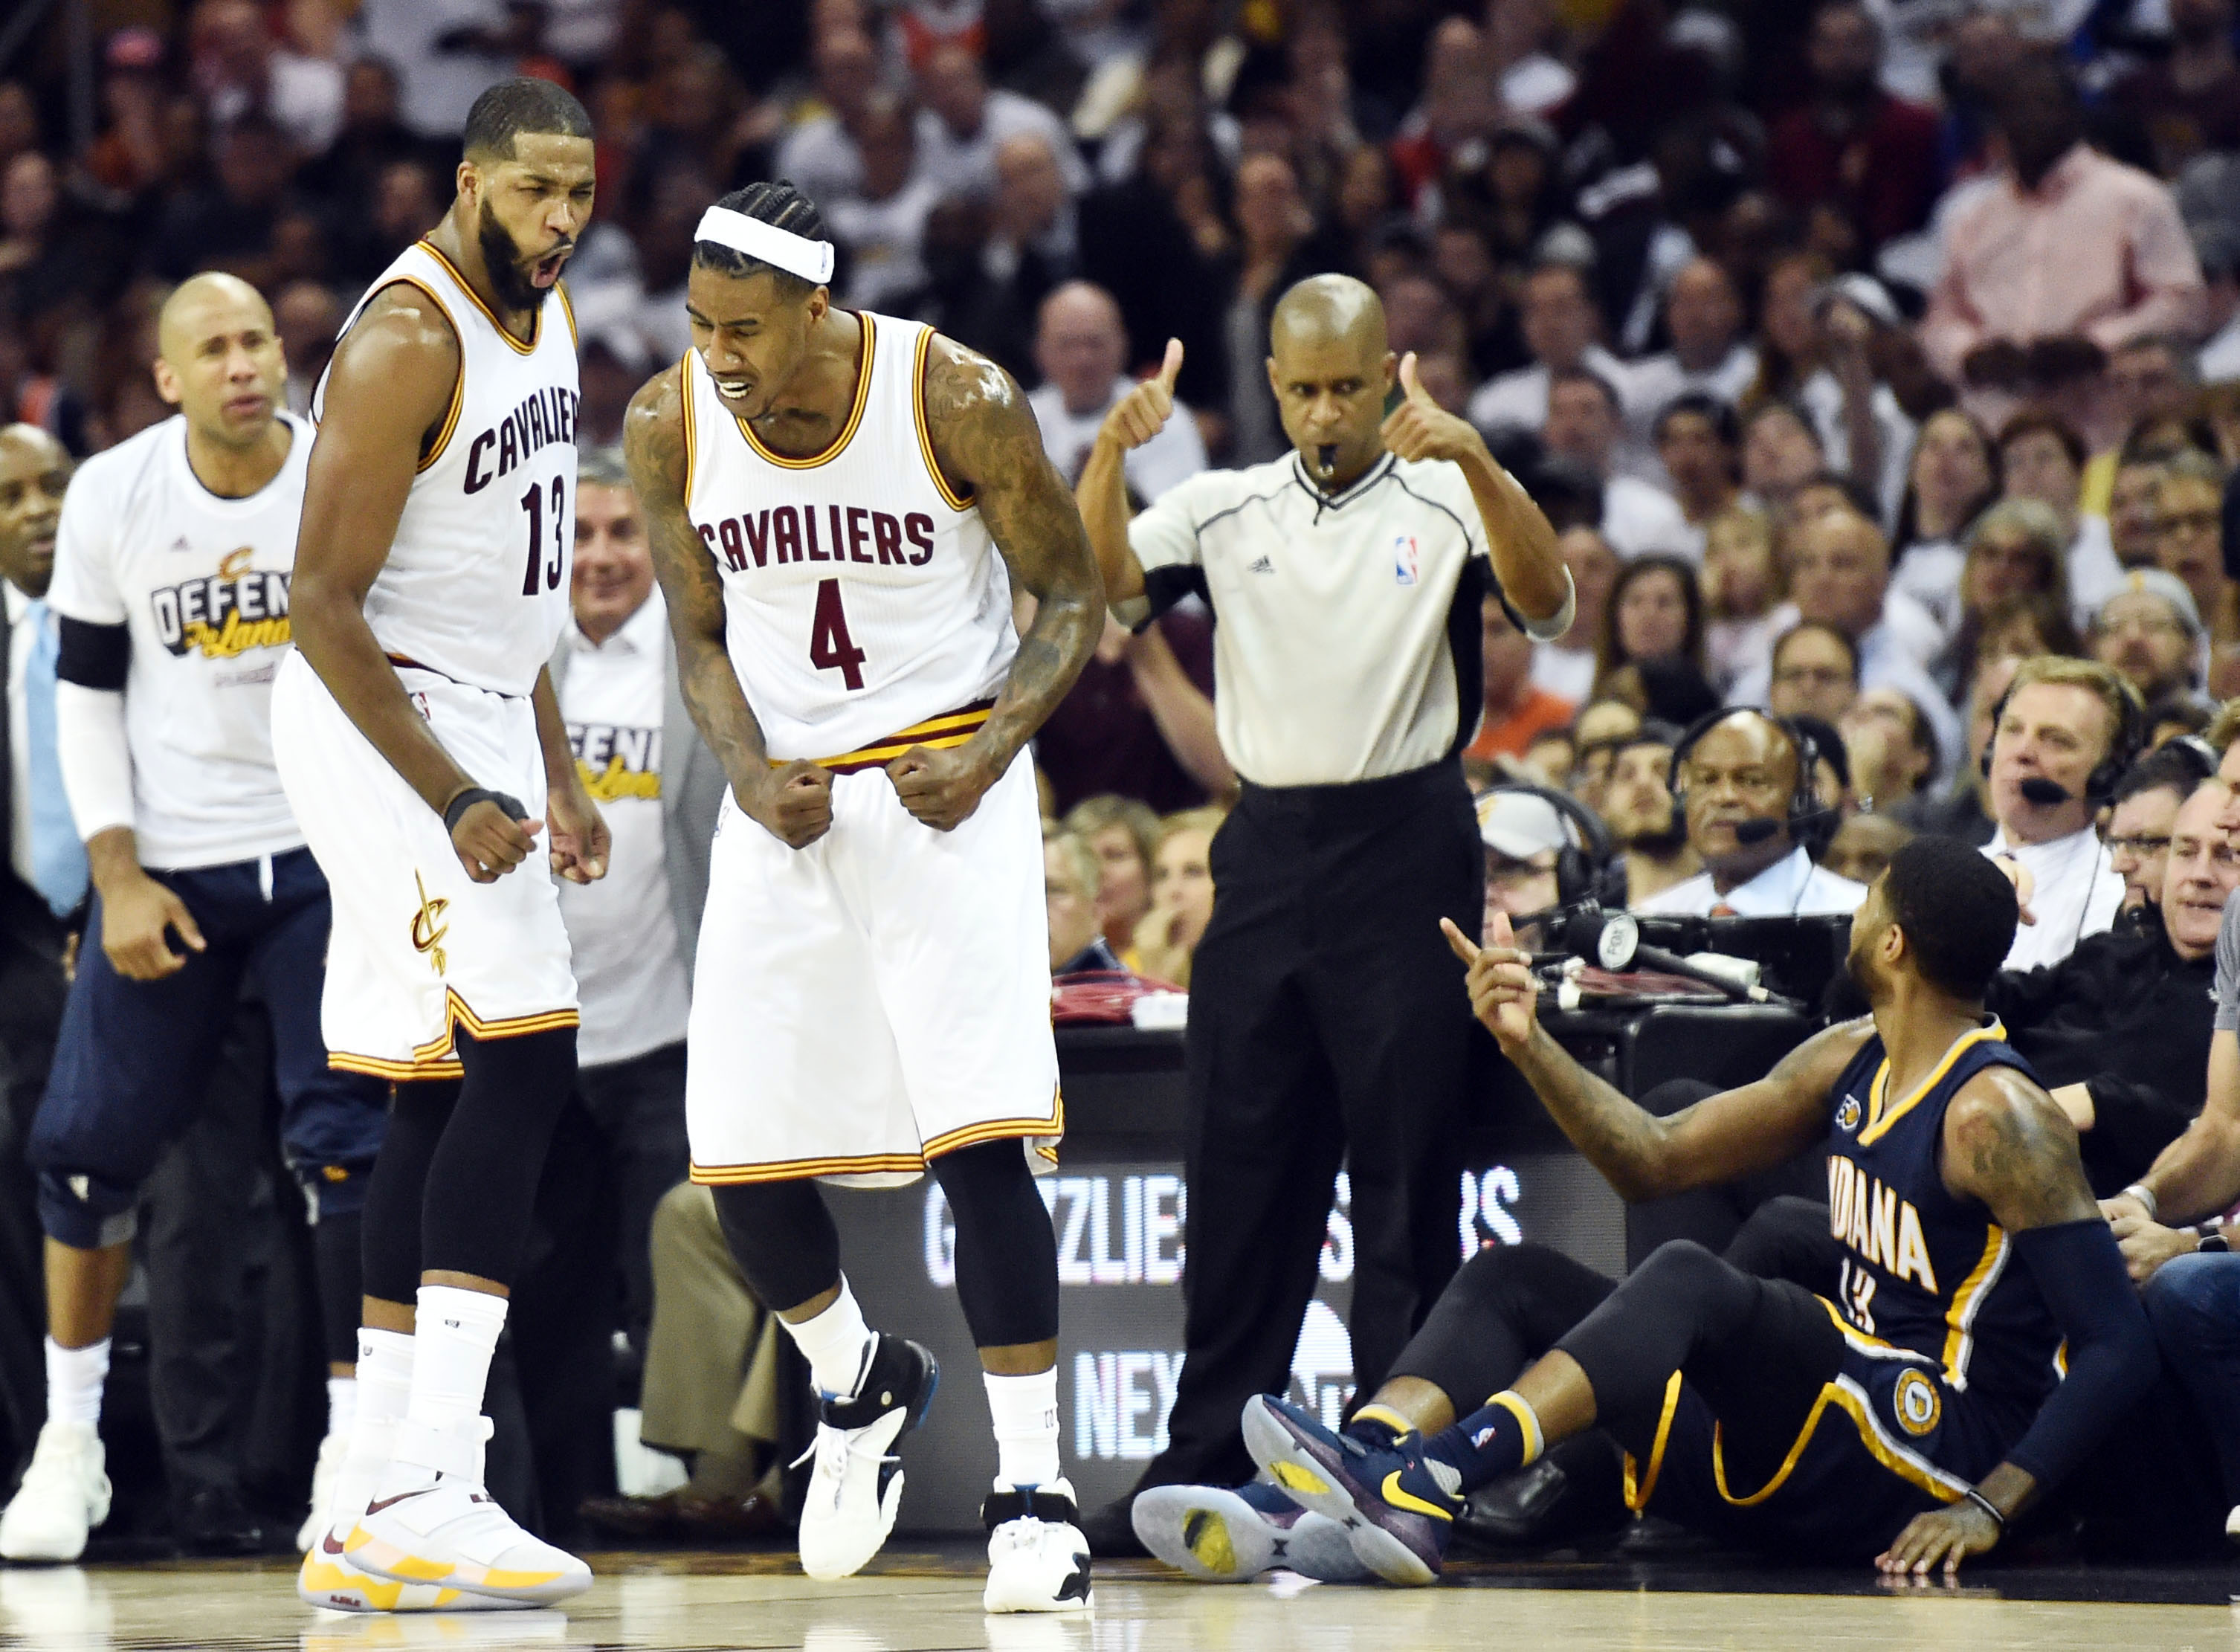 10017649-nba-playoffs-indiana-pacers-at-cleveland-cavaliers